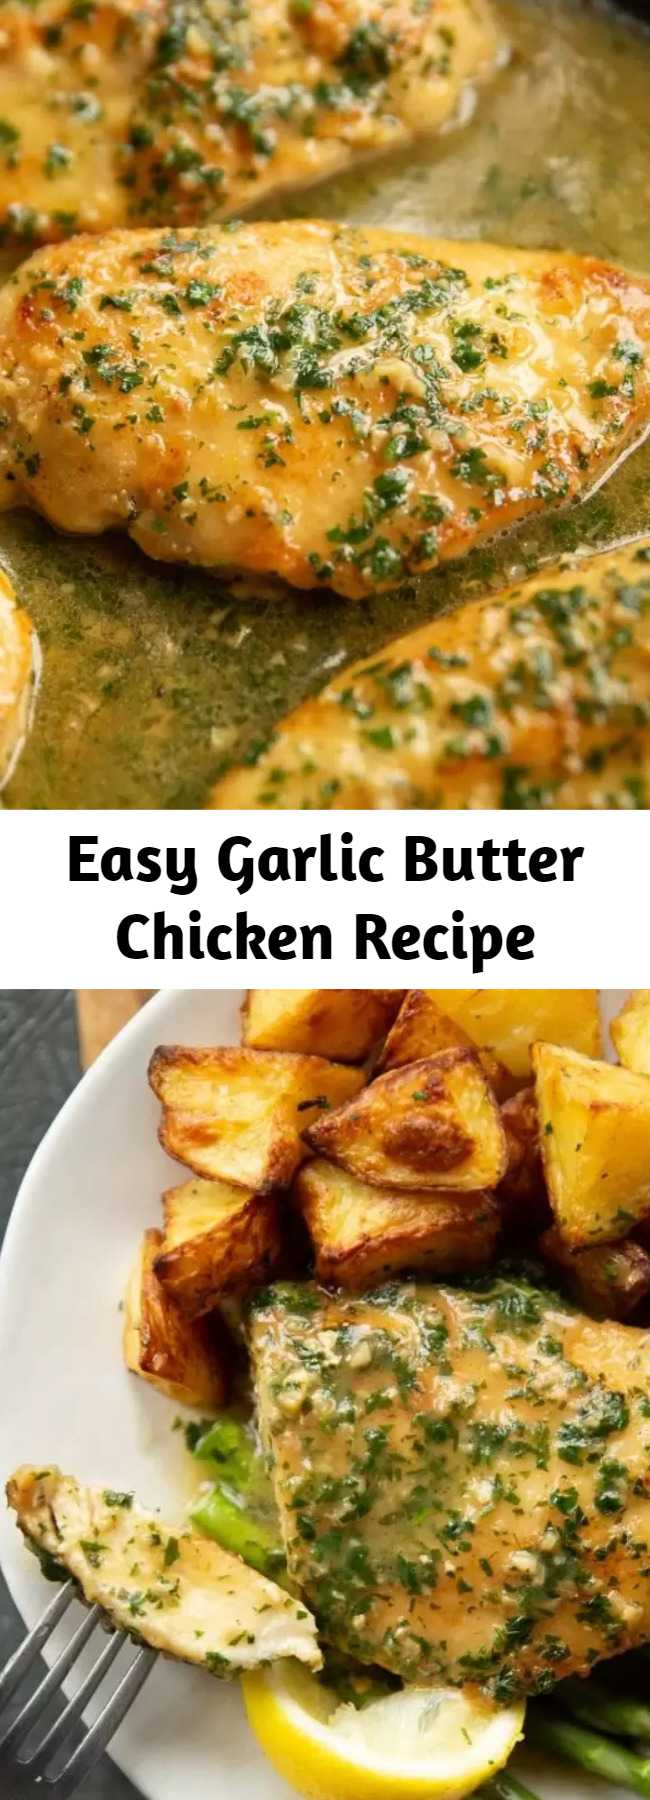 Easy Garlic Butter Chicken Recipe - This garlic butter chicken is perfect for a quick and easy midweek dinner. It's rich, garlicky and only requires 4 ingredients for the sauce! #garlic #butter #chicken #chickenbreast #dinner